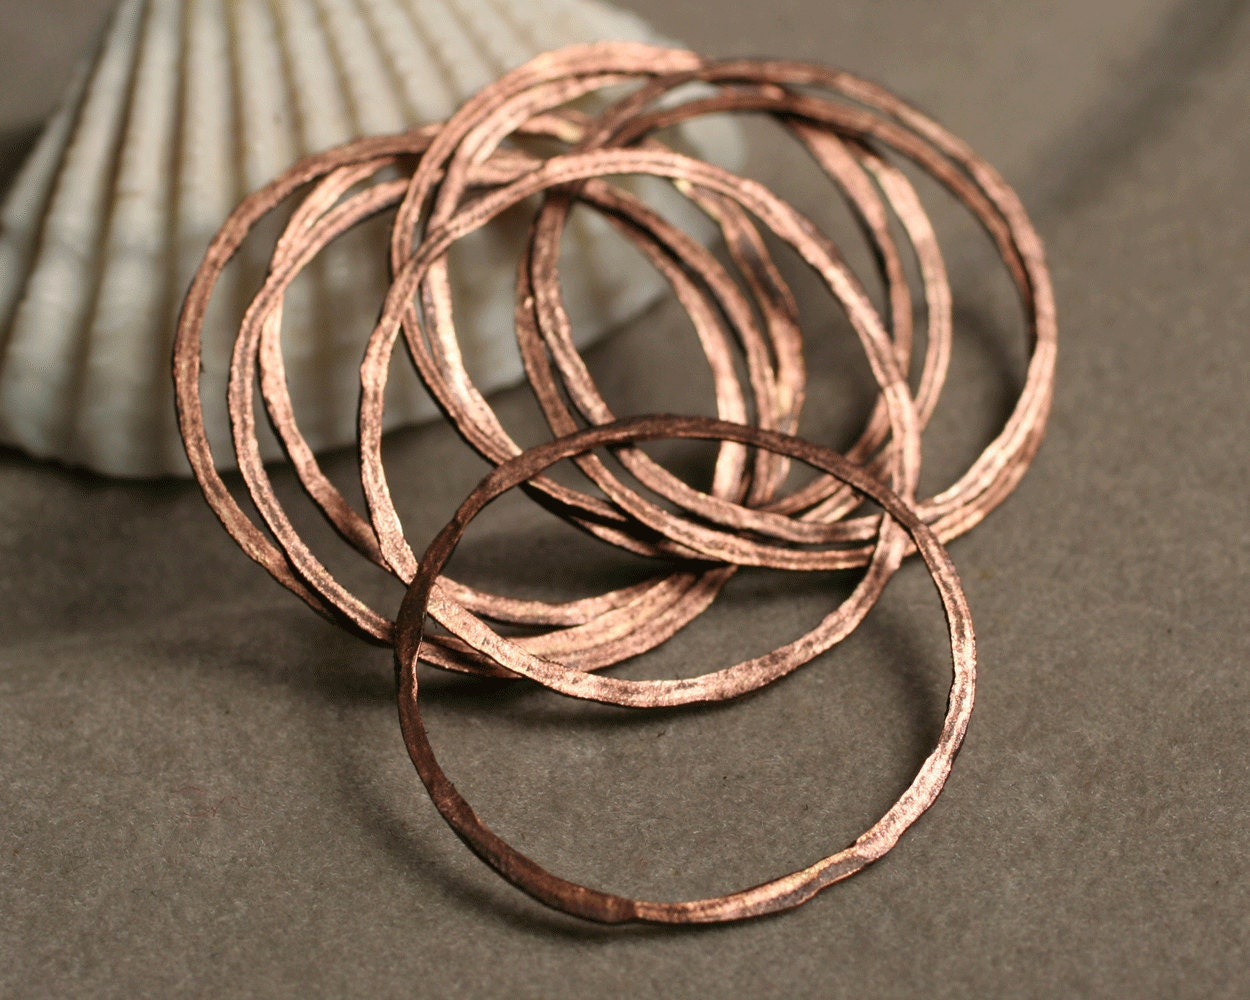 Hand hammered antique copper ring aprox 24mm in diameter, 8 pcs (item ID ACOR20K)